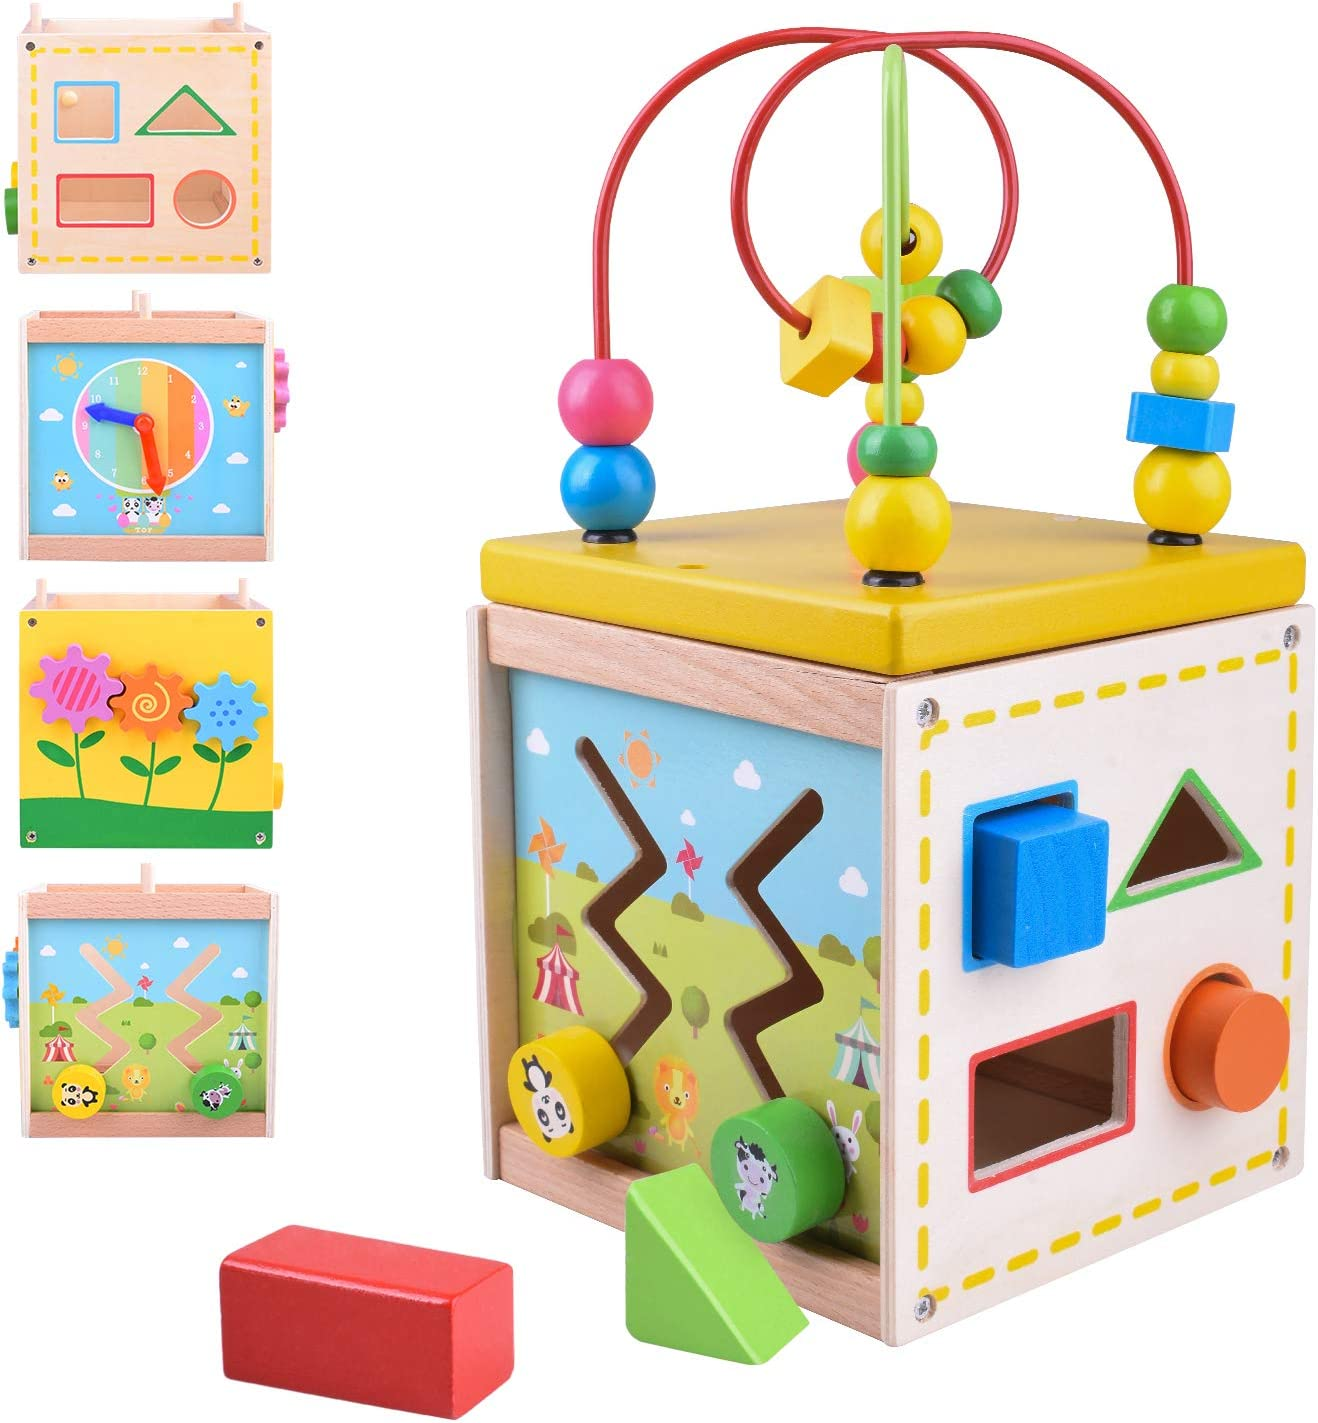 Longruner Wooden Activity Cube Center Baby Educational Preschool Learning Toys with Bead Maze Shape Sorter